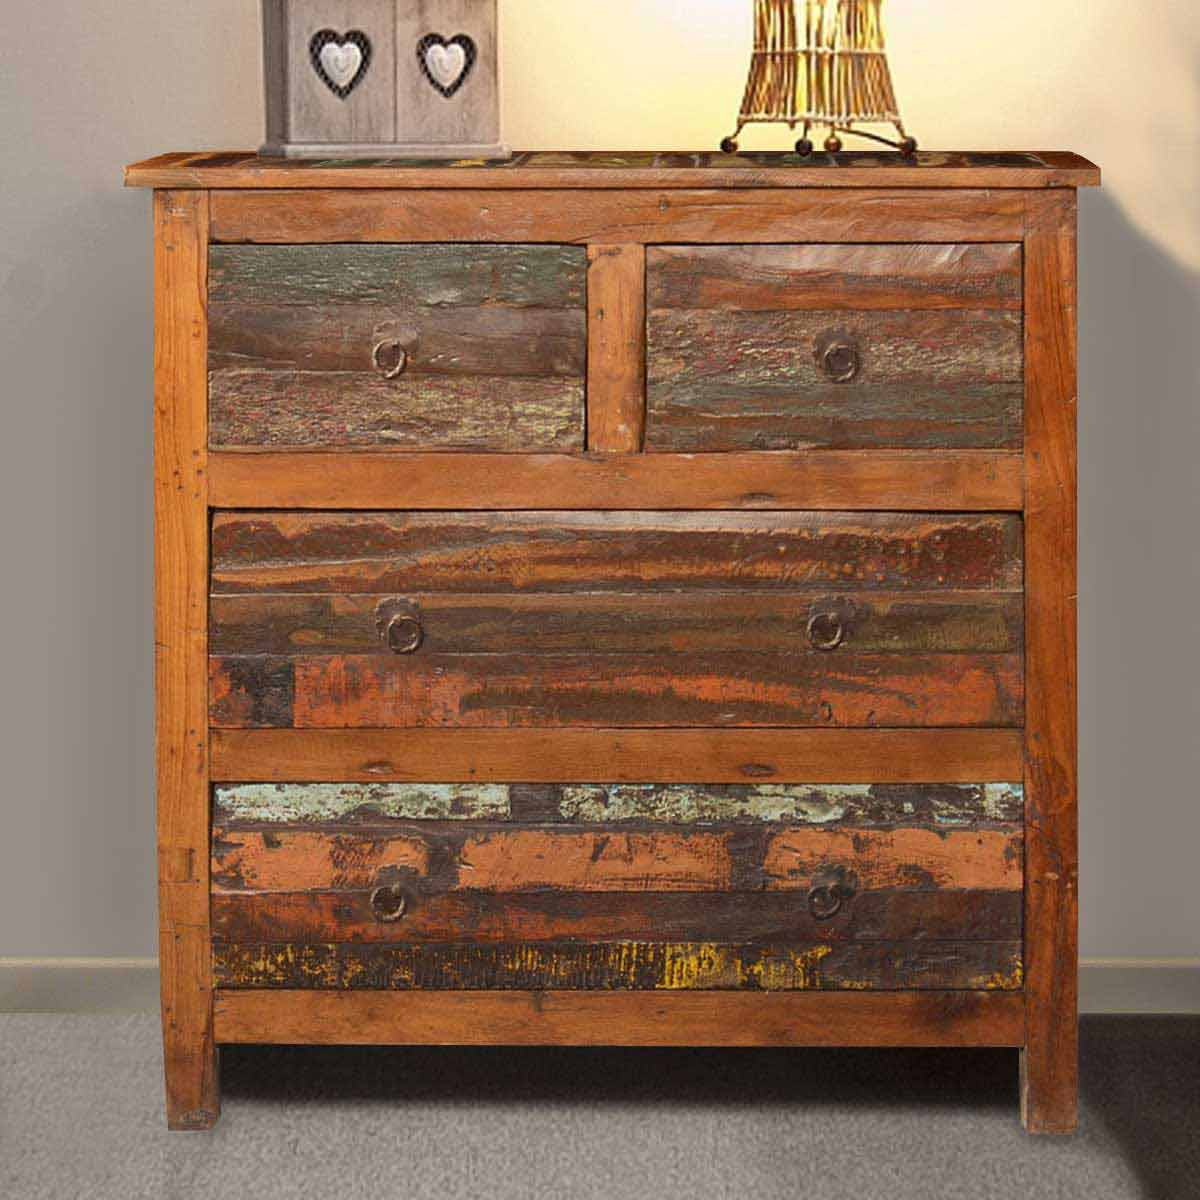 Appalachian Country Reclaimed Wood Rustic Dresser Chest